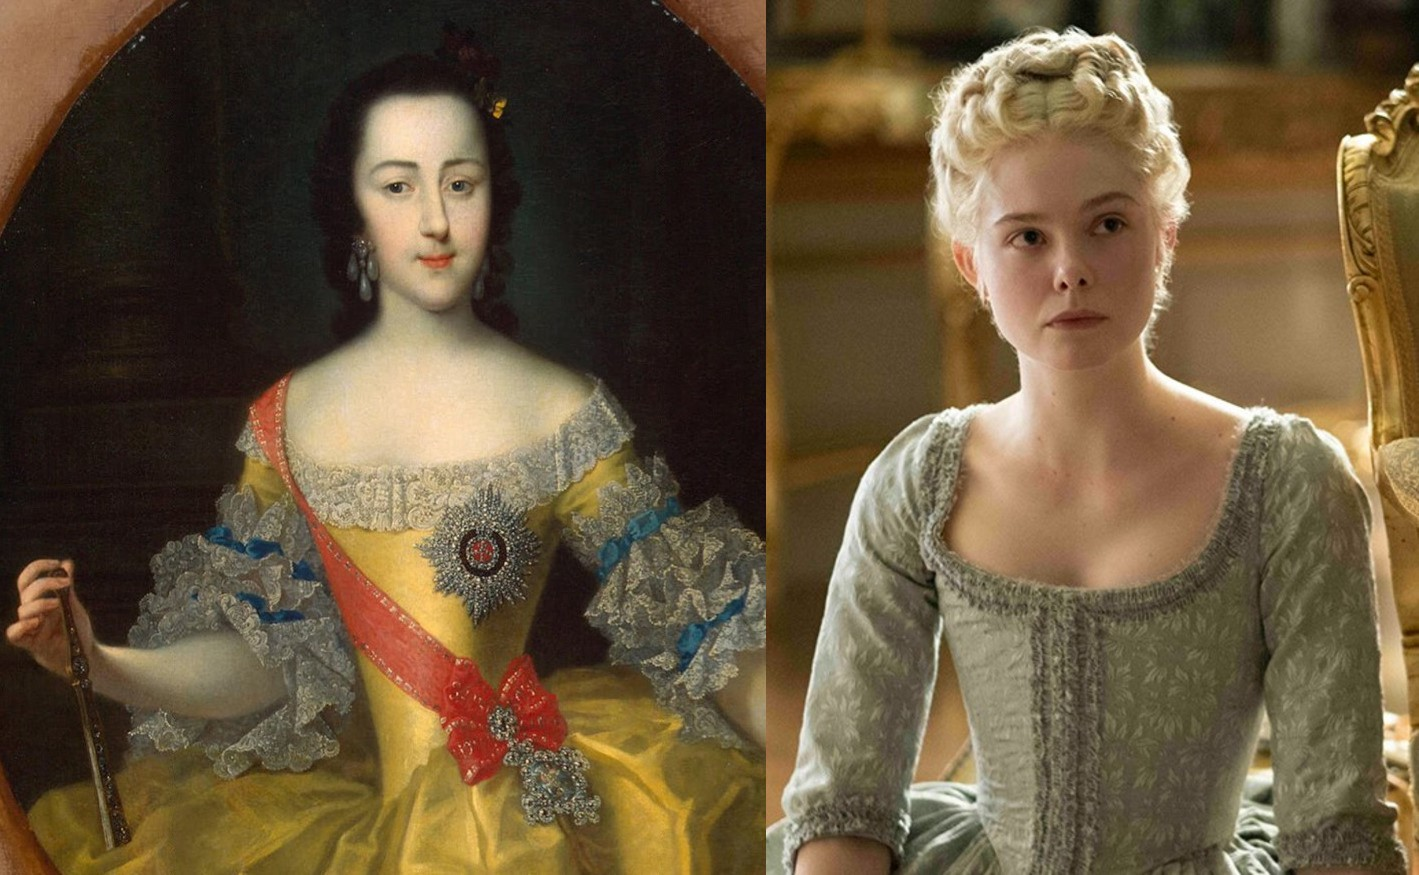 Catherine the Great —A Horse, a Movie and the Facts | by Peter Preskar | History of Yesterday | Medium